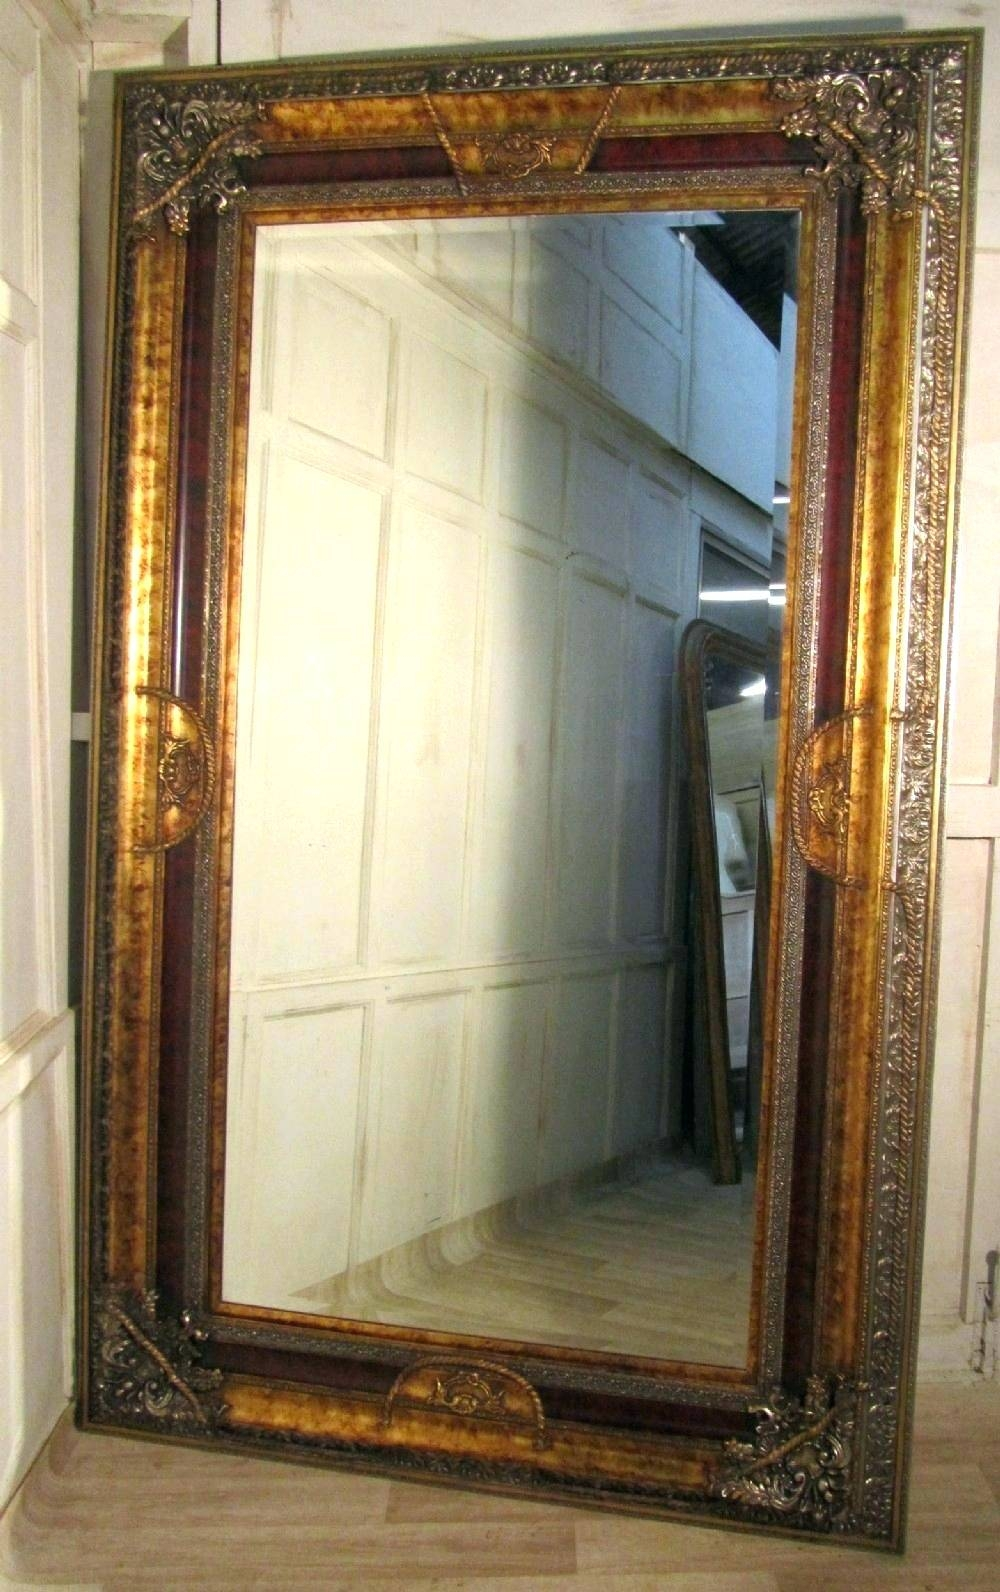 Wall Mirrors ~ Antique Gold Mirrors Antique Wall Mirrors For Sale for Extra Large Gold Mirrors (Image 14 of 15)